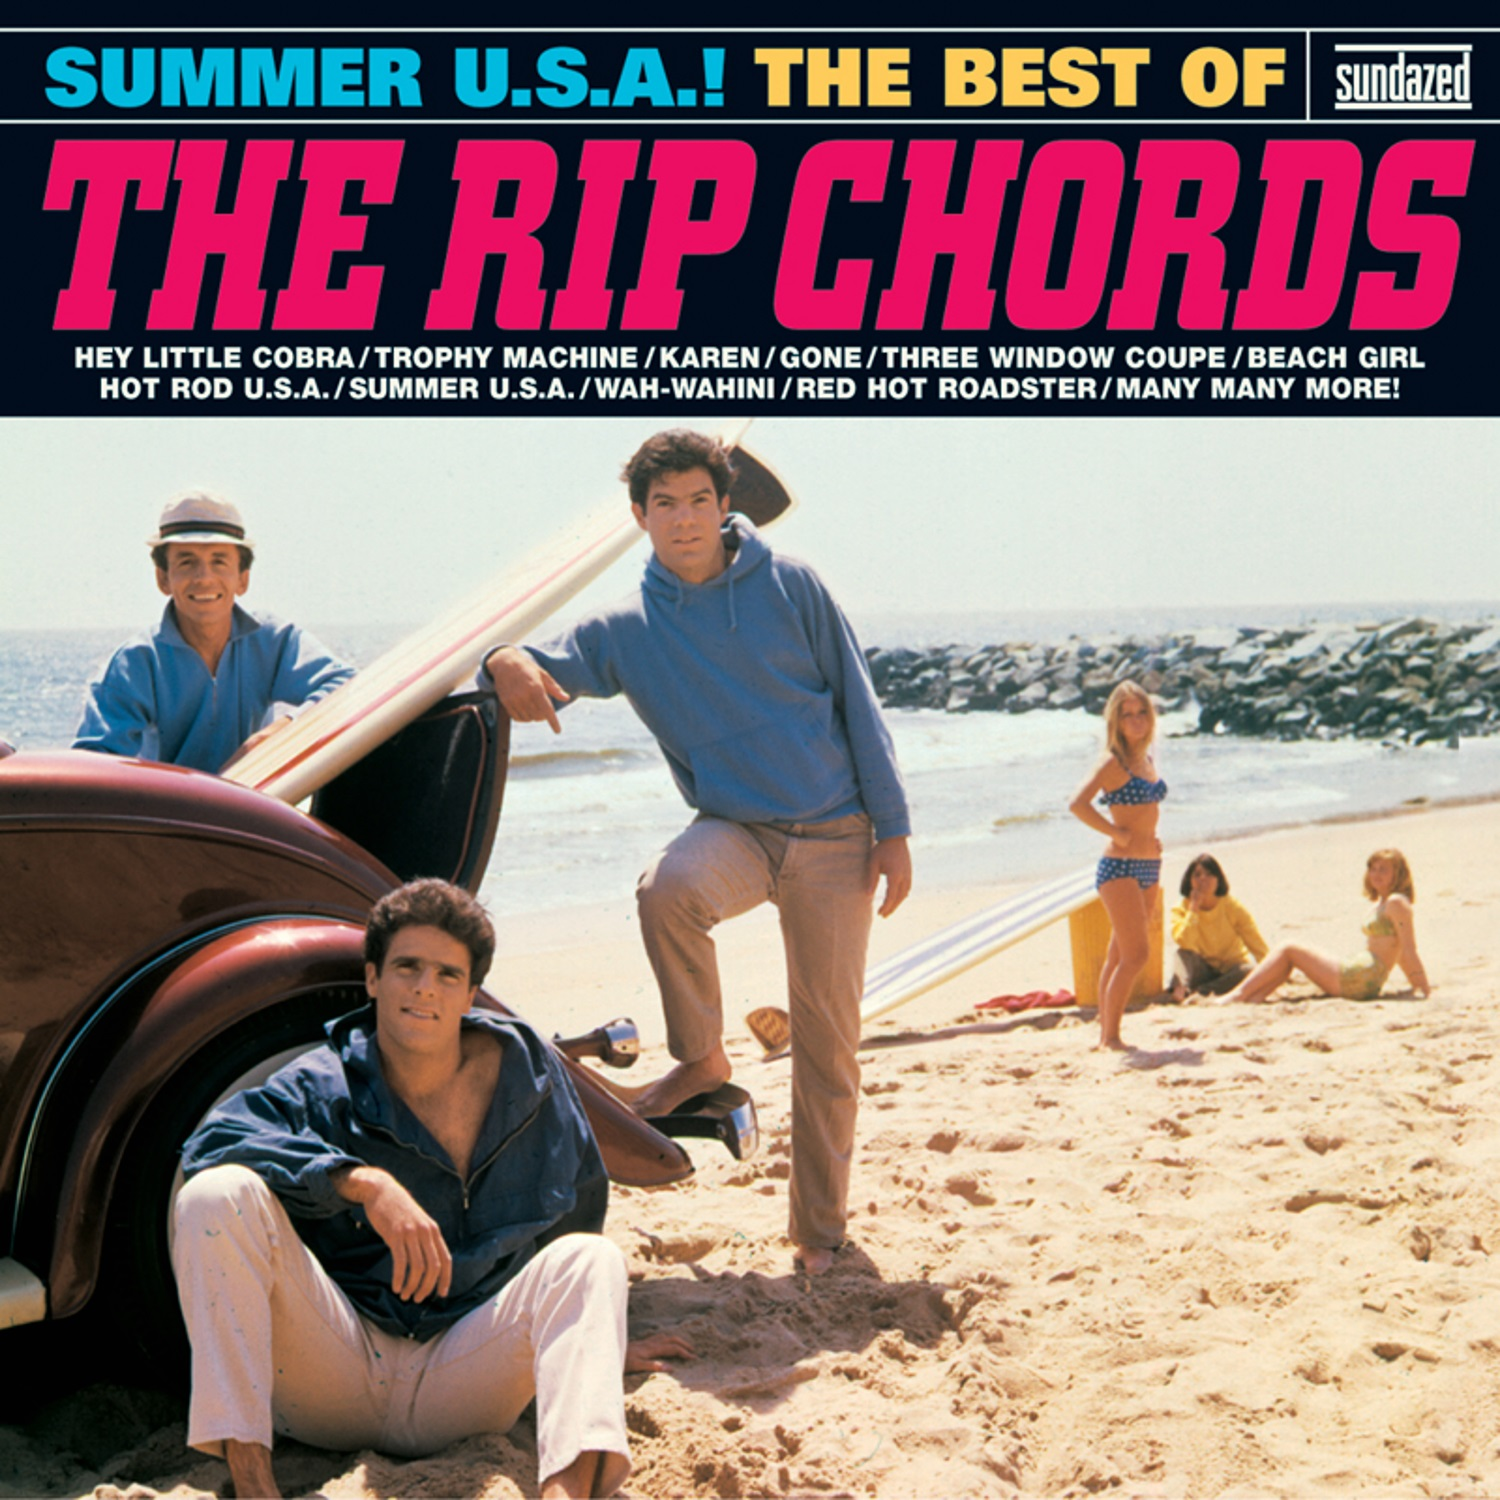 Rip Chords, The - Summer USA! Best Of The Rip Chords - CD